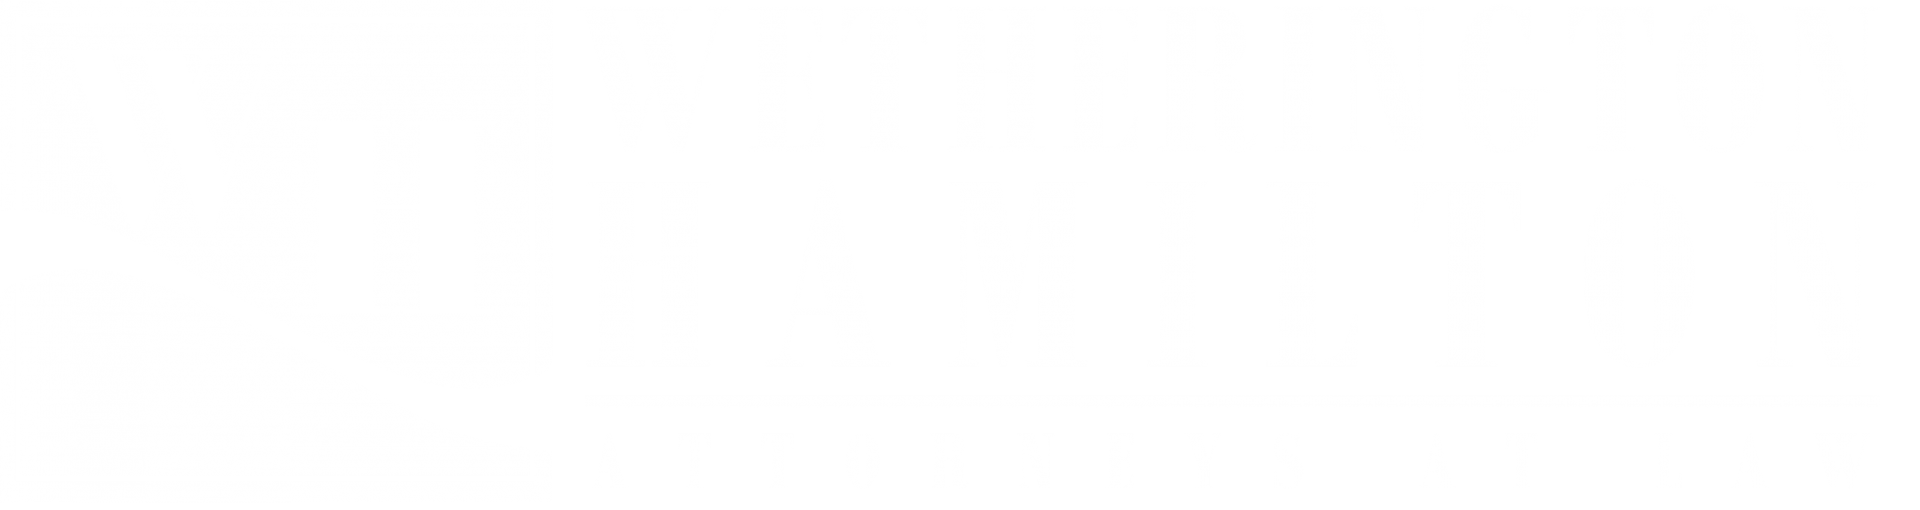 Wetherington Hamilton, Attorneys at Law